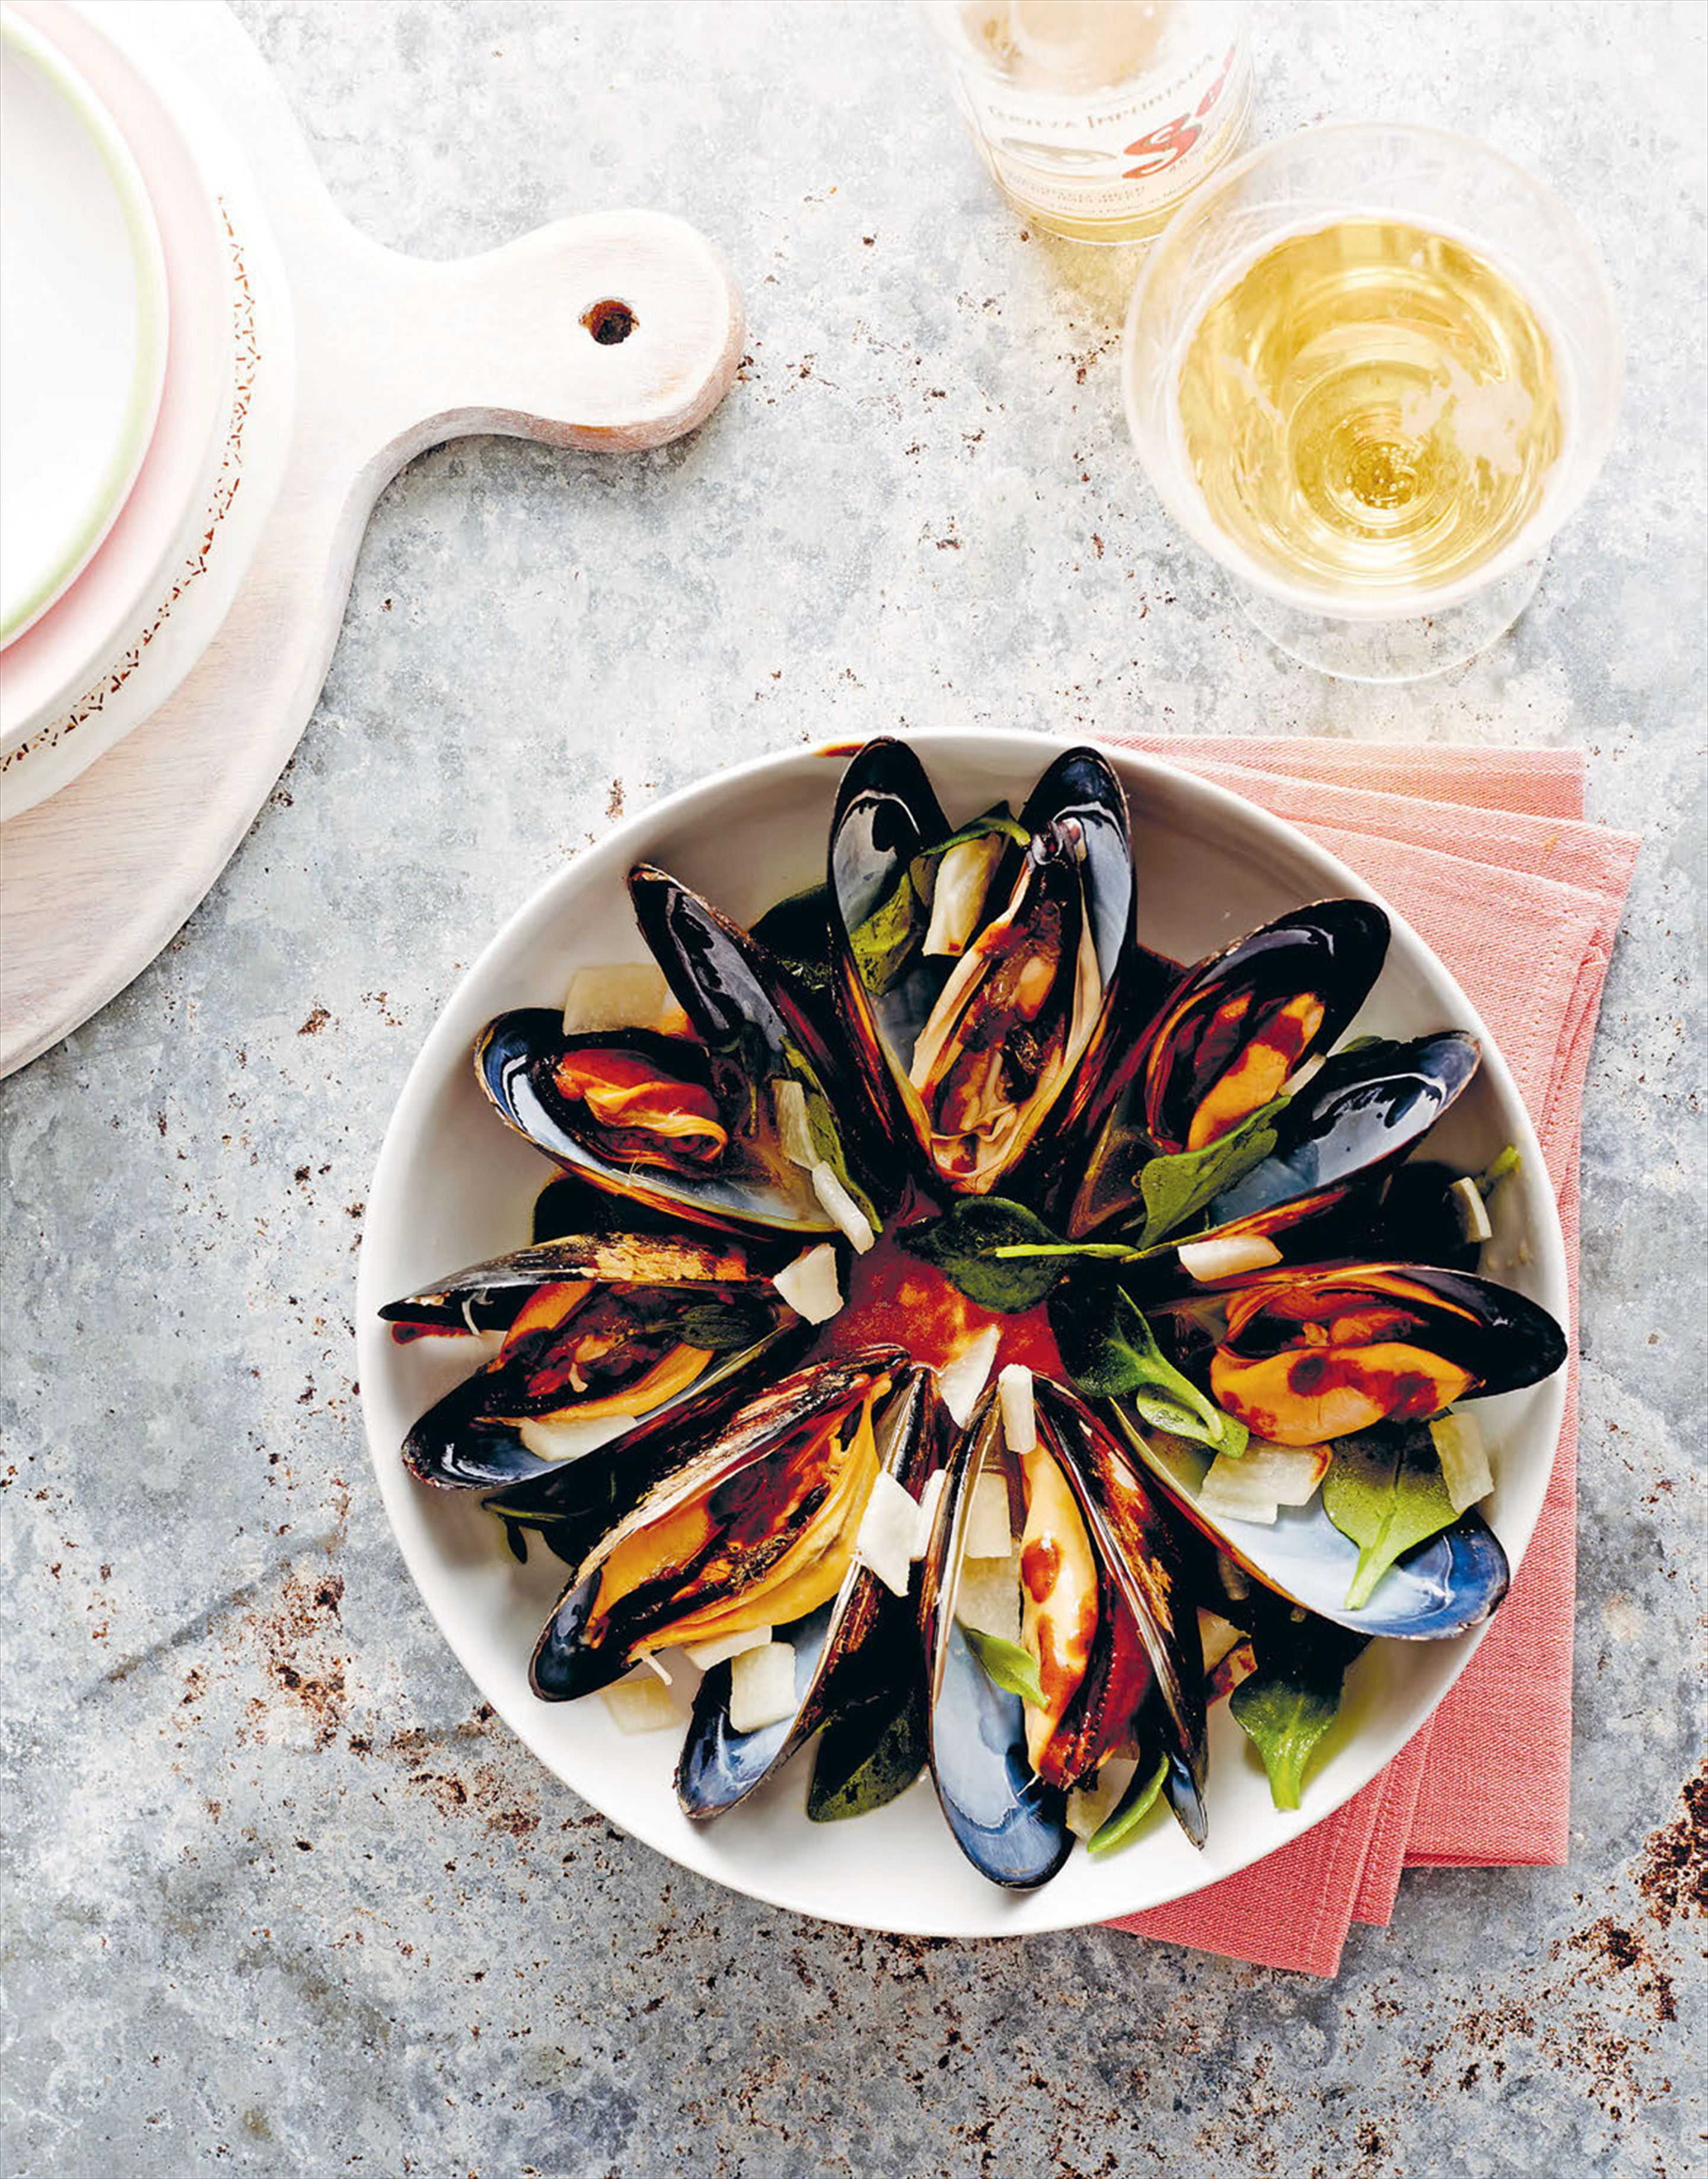 Spring bay mussels in cerveza negra & adobo sauce